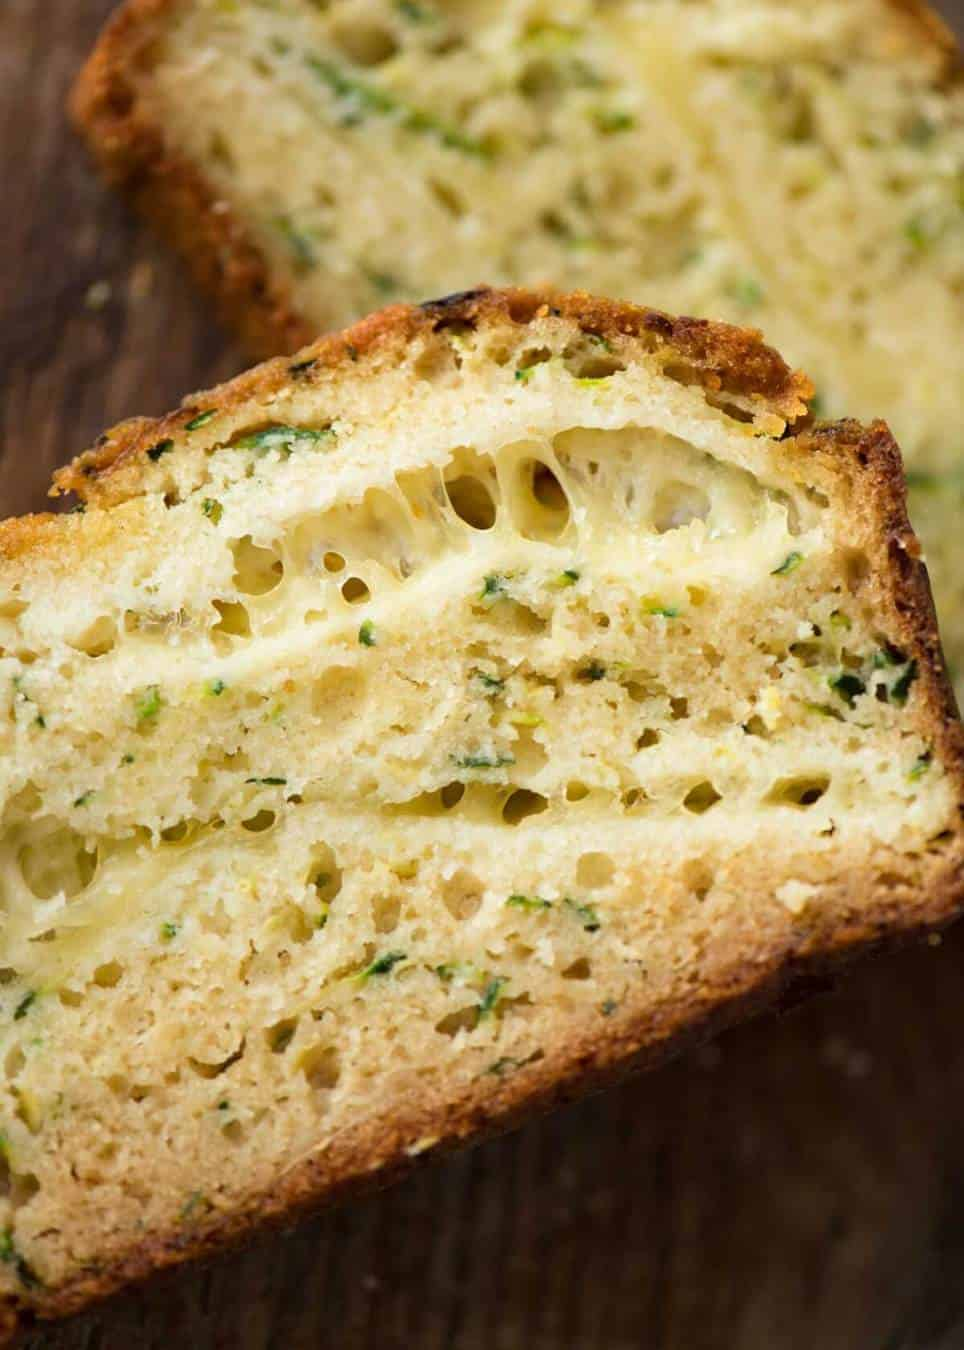 A Cheesy Zucchini Bread that's quick to make (no yeast) and is so moist, you'll scoff it down even without slathering it with butter! recipetineats.com